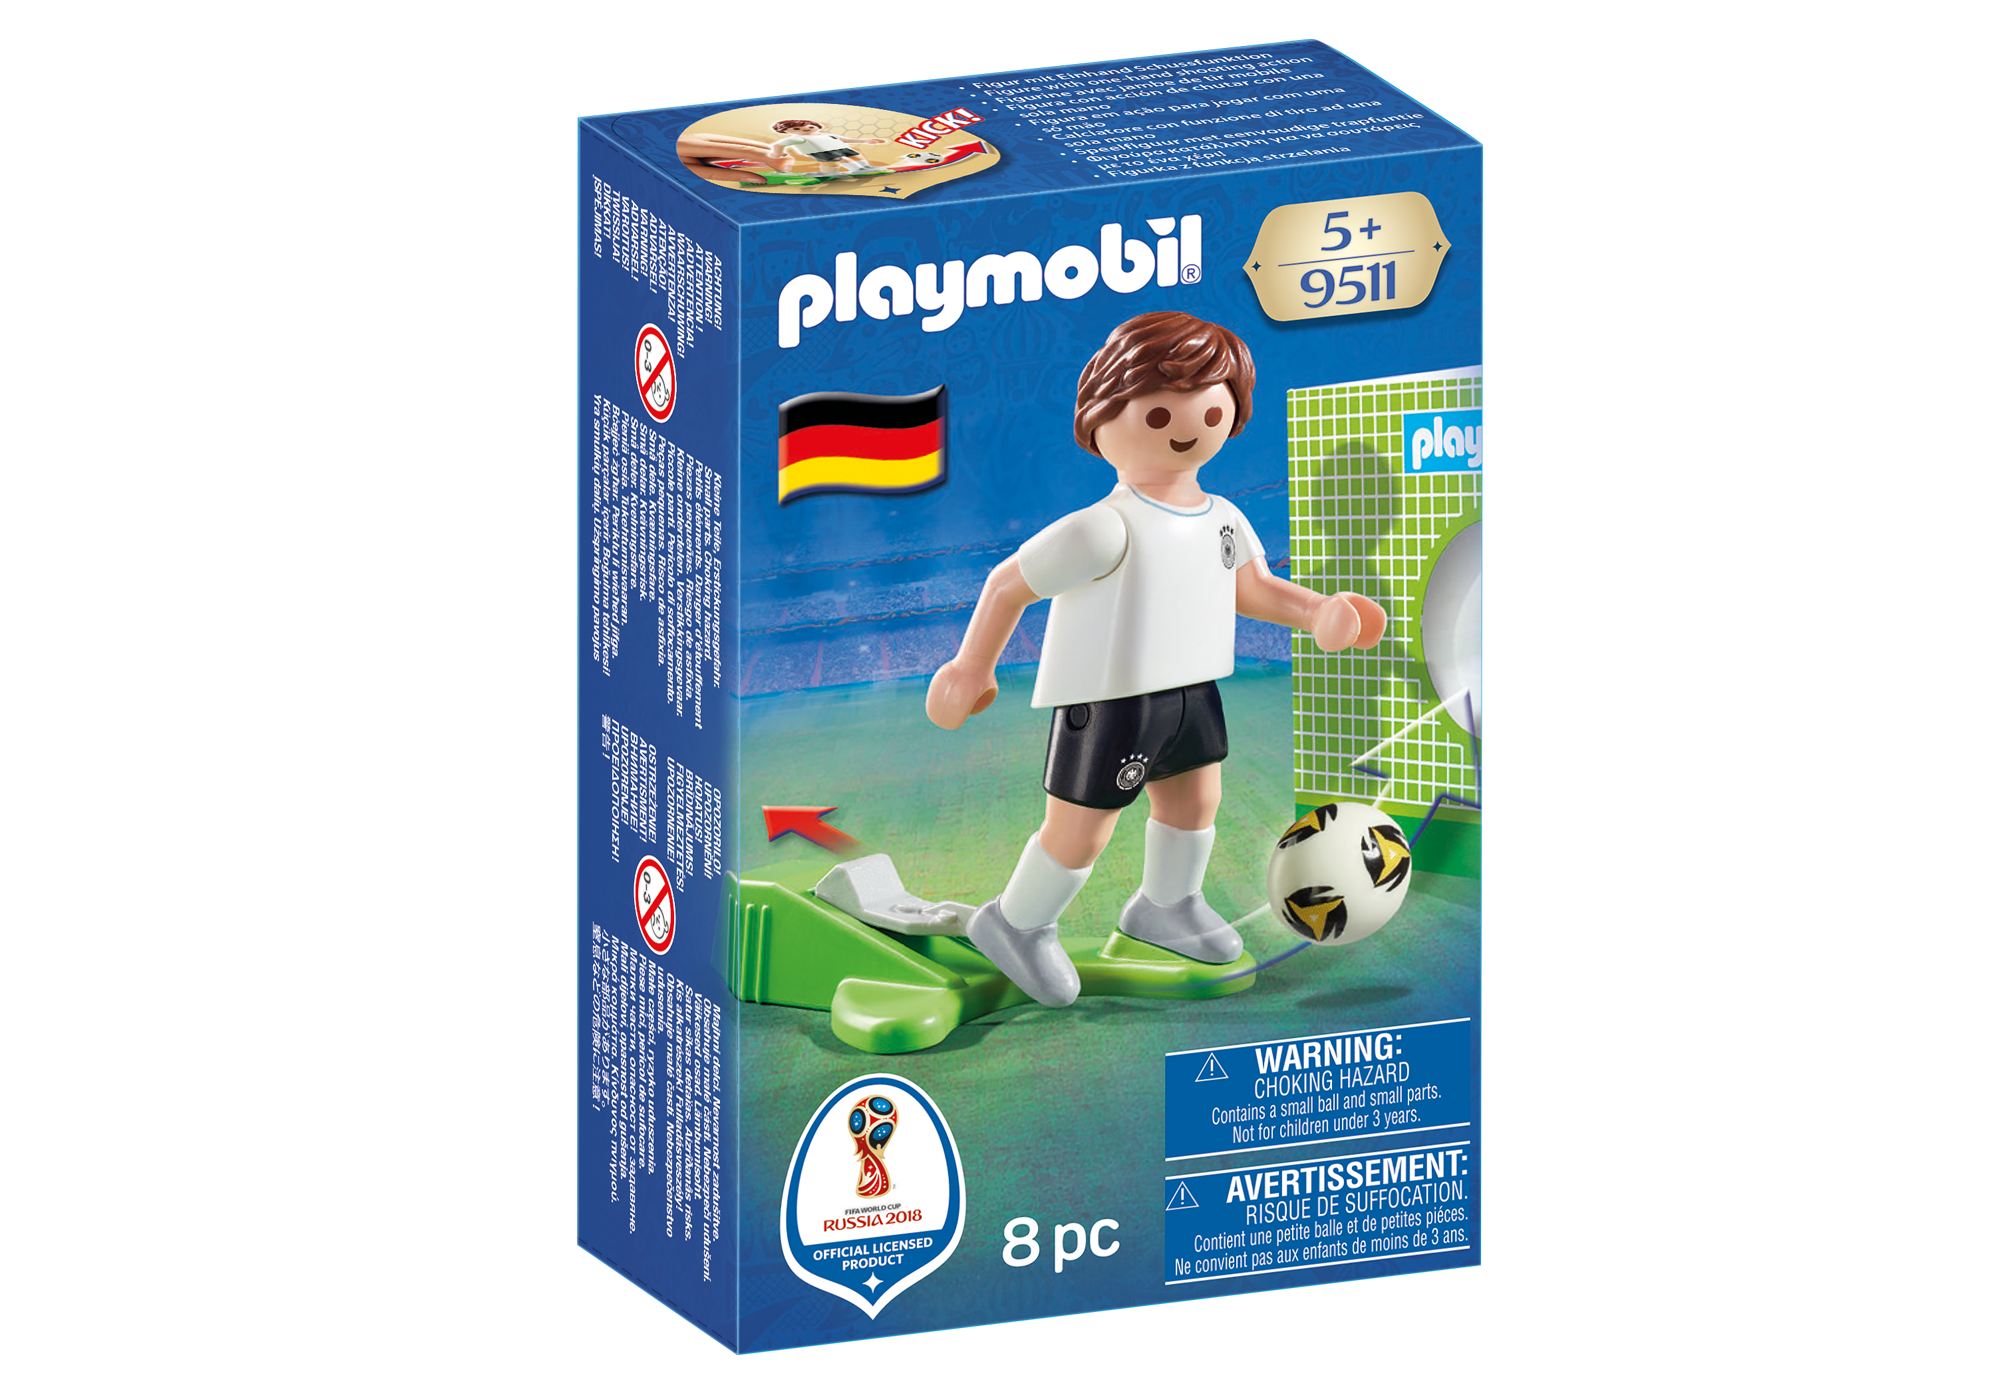 http://media.playmobil.com/i/playmobil/9511_product_box_front